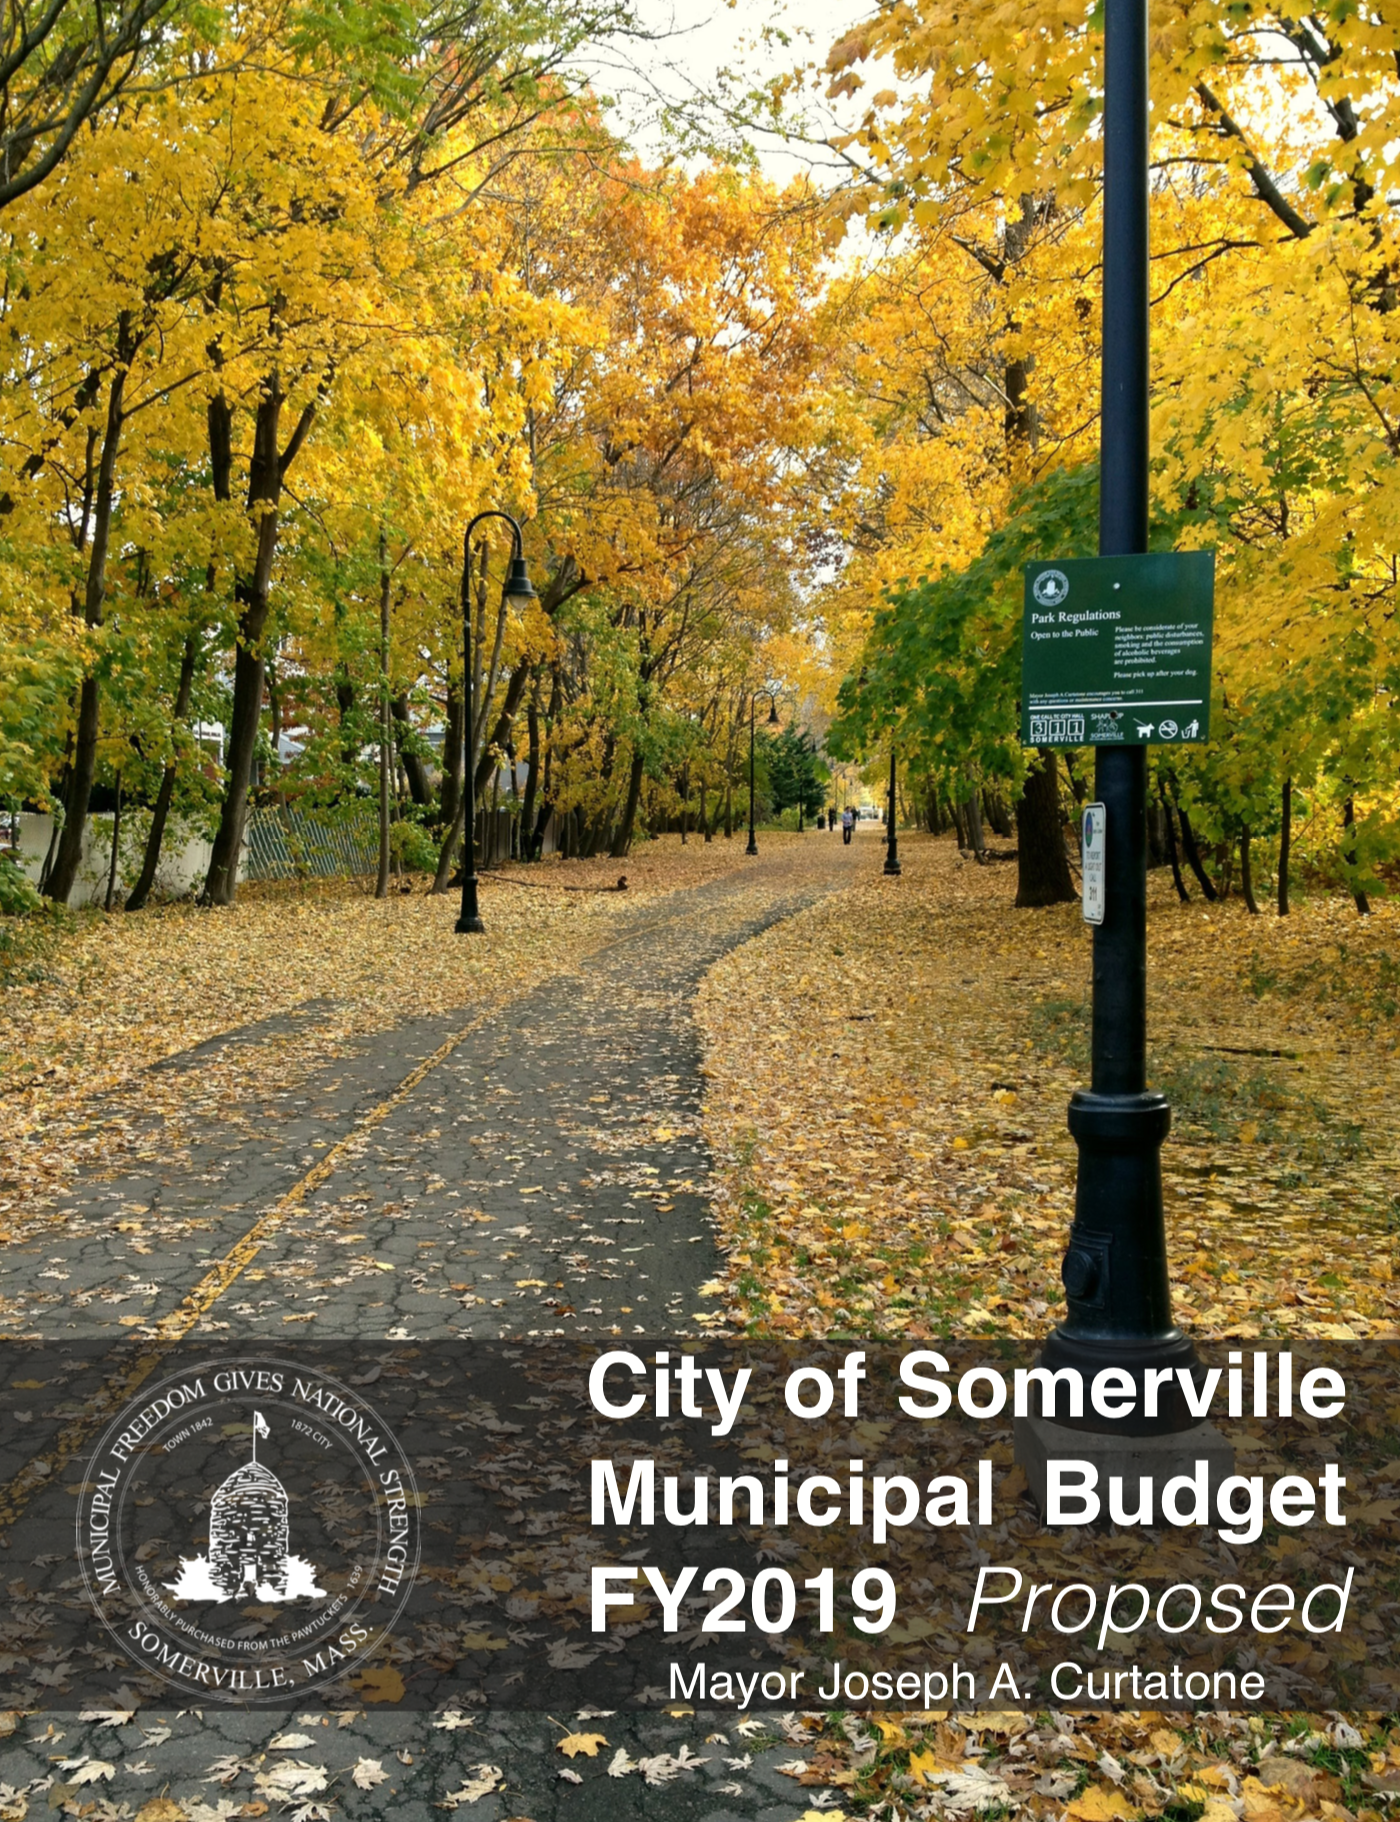 PDF preview links to FY 2019 budget document